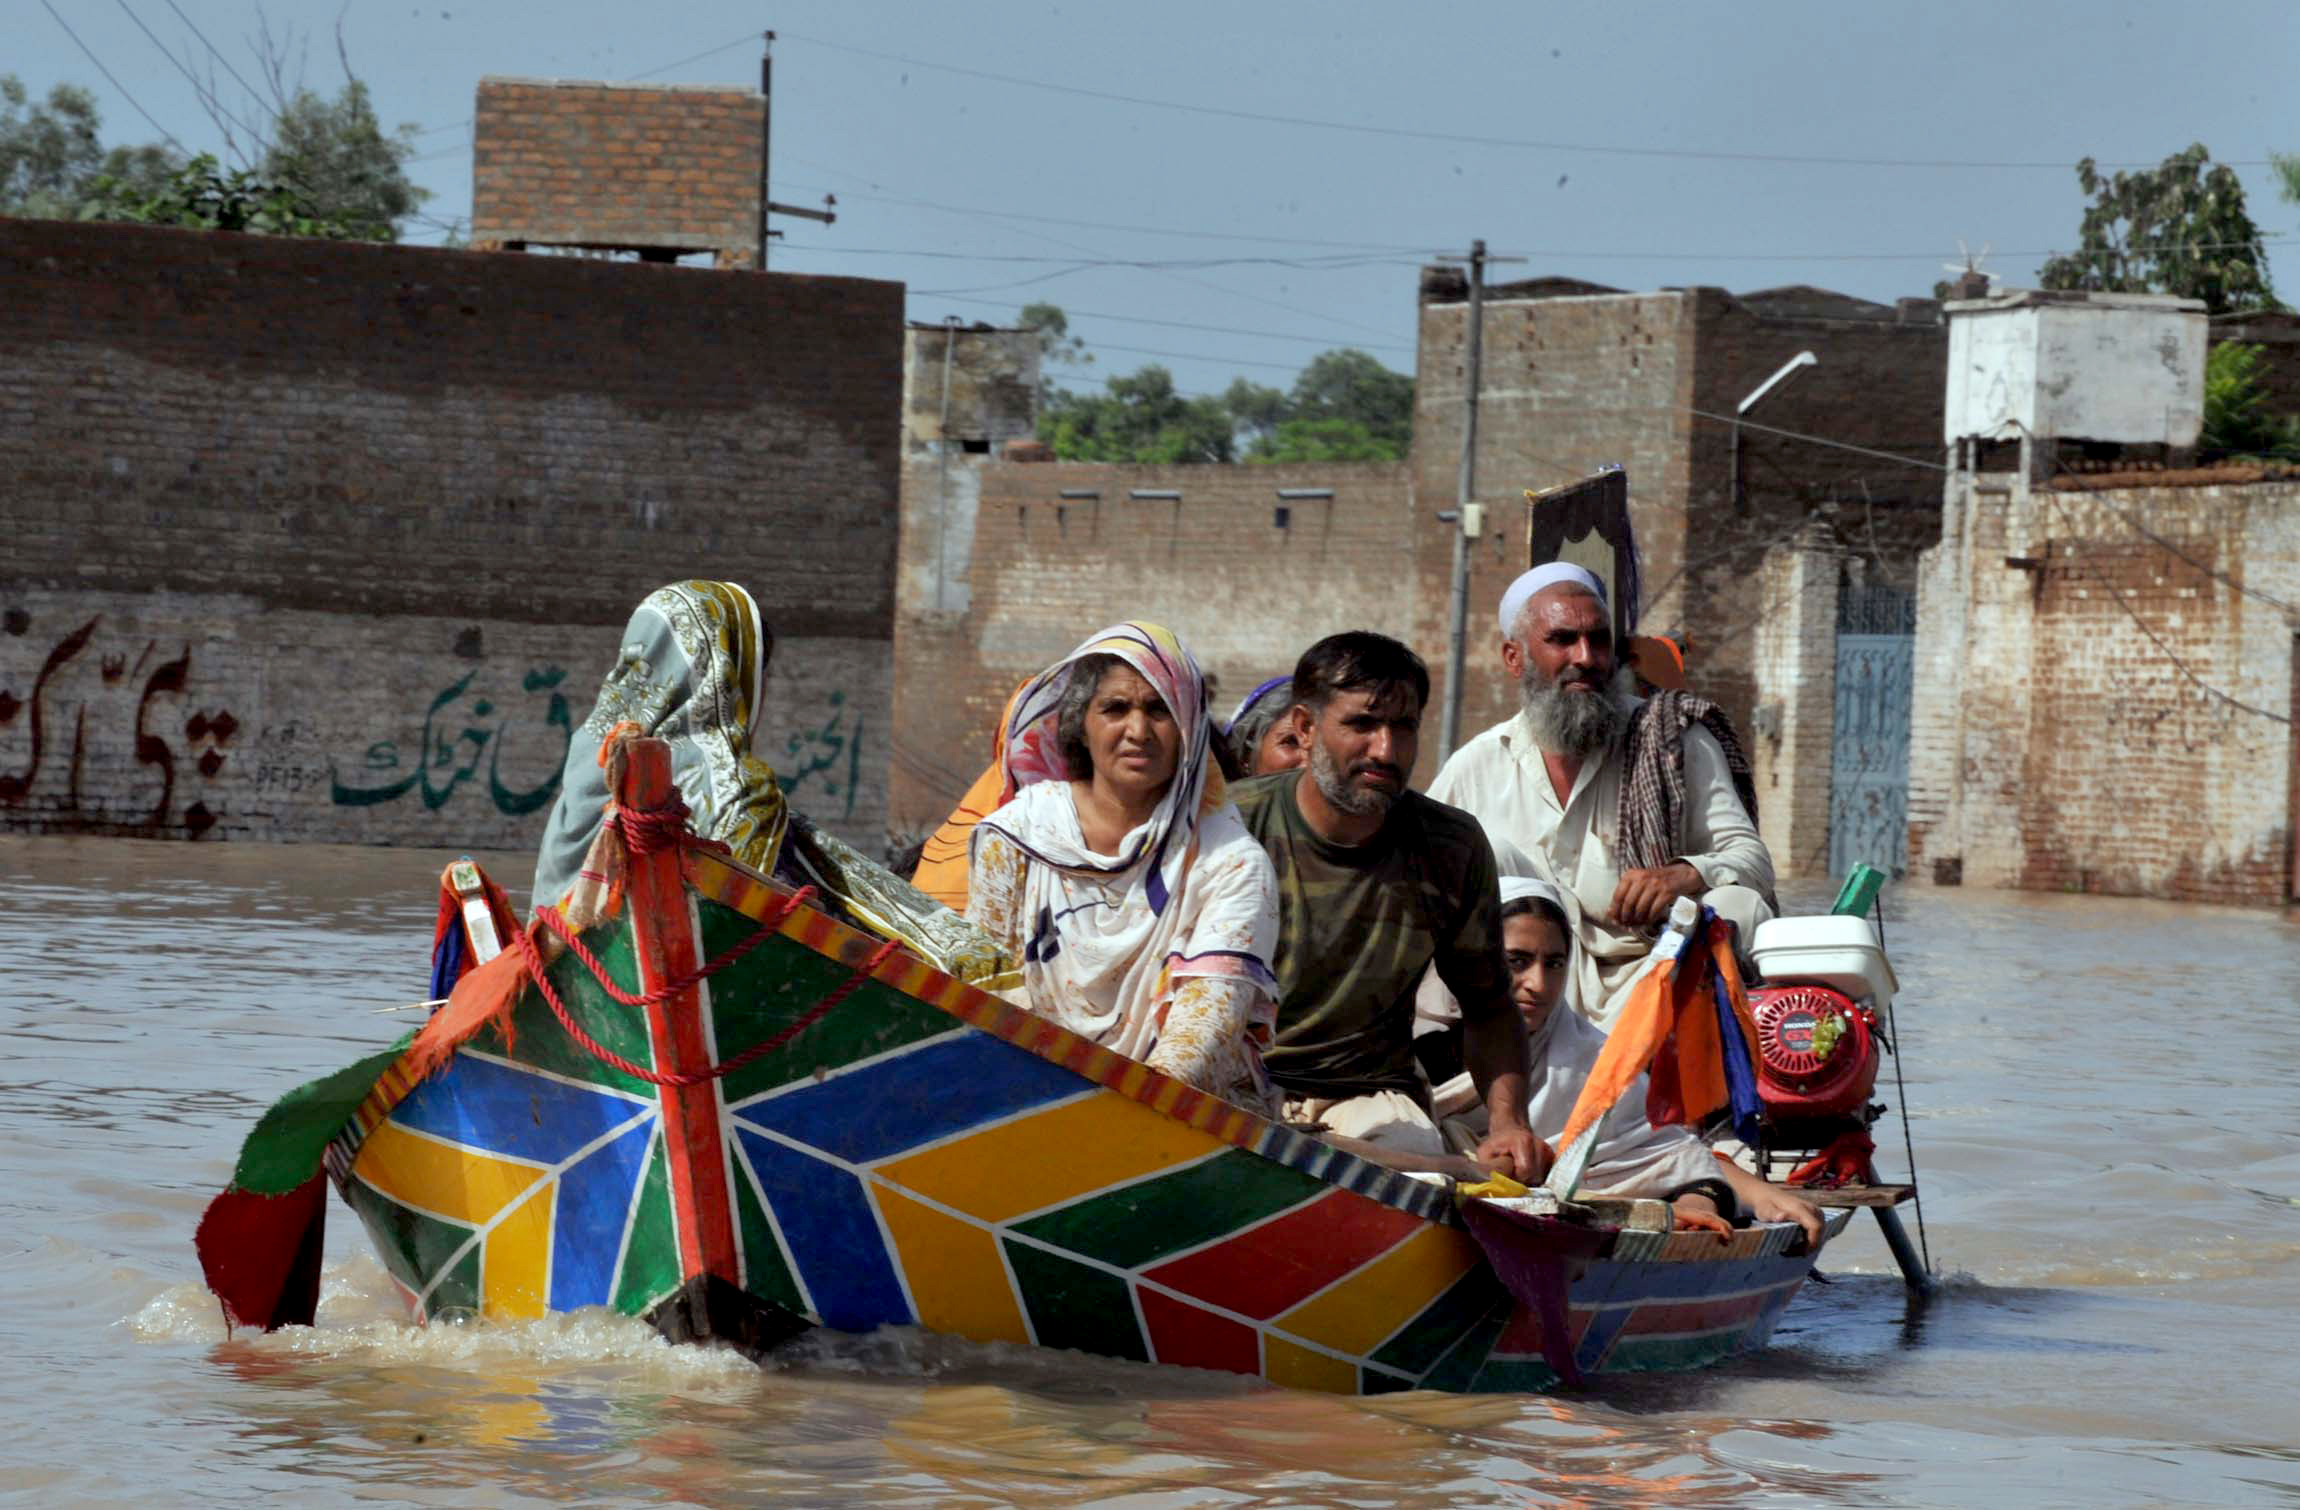 <p>Paddling away from floods in Pakistan in 2010; flash flooding in Karachi killed more than a dozen last week. Flickr/IRIN News</p>